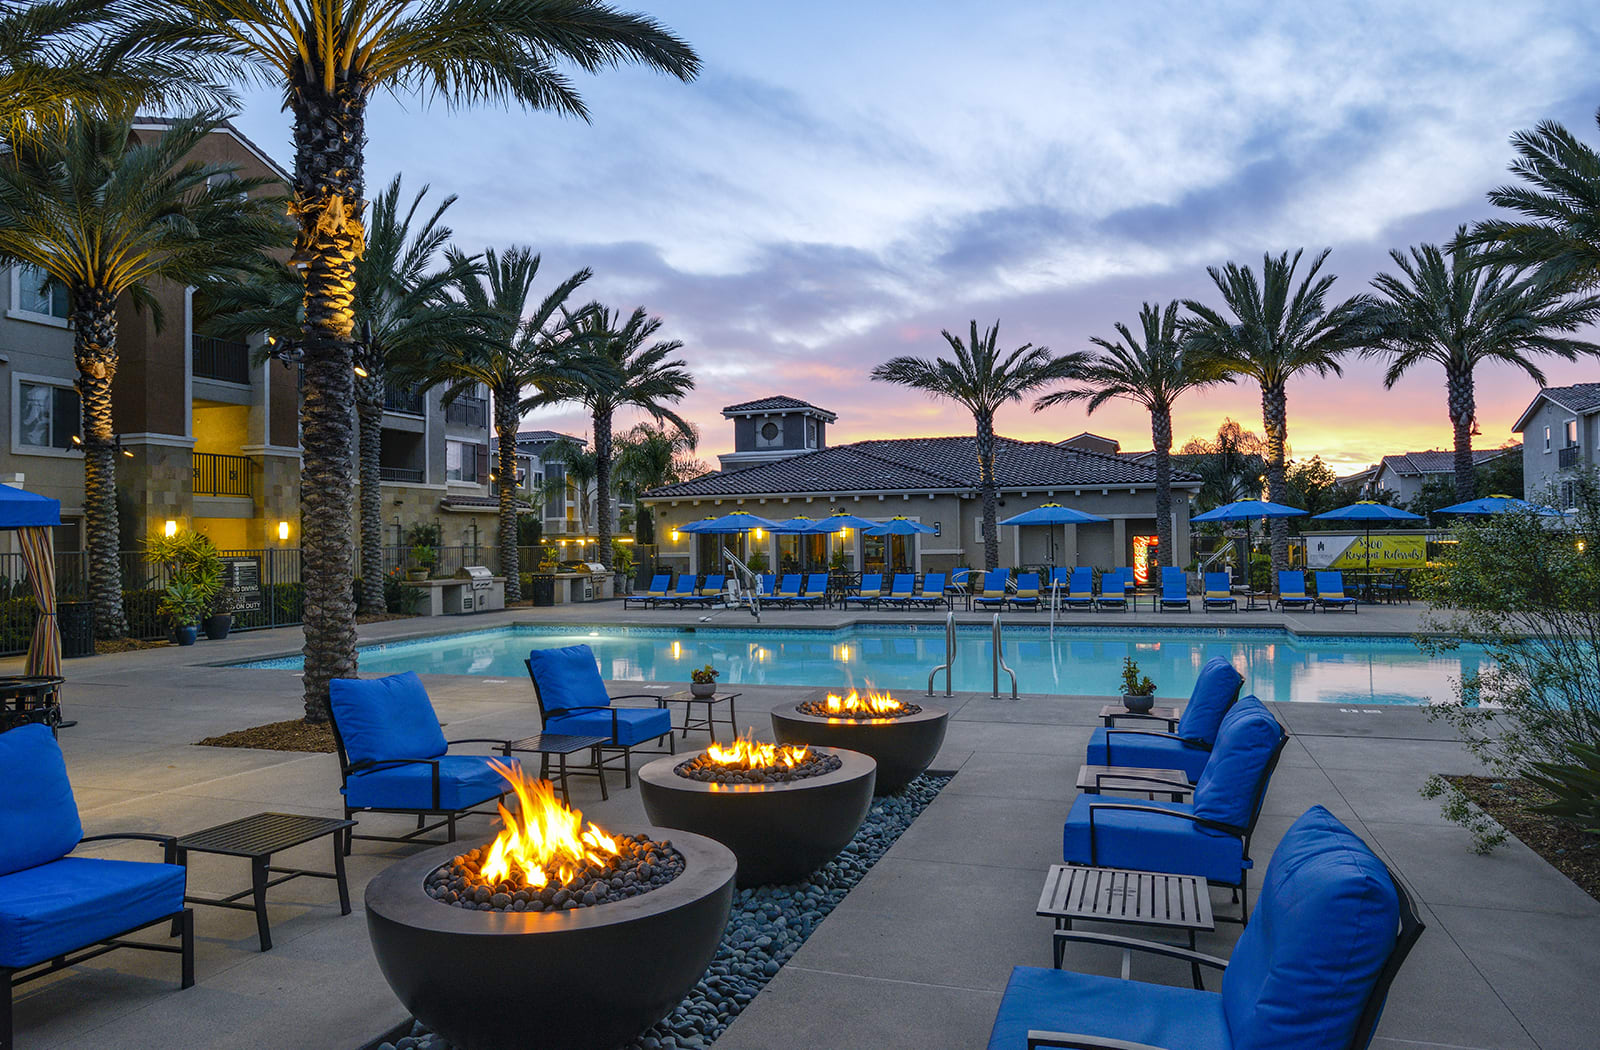 Cozy Fire Pit with Seating at Preserve at Melrose, Vista